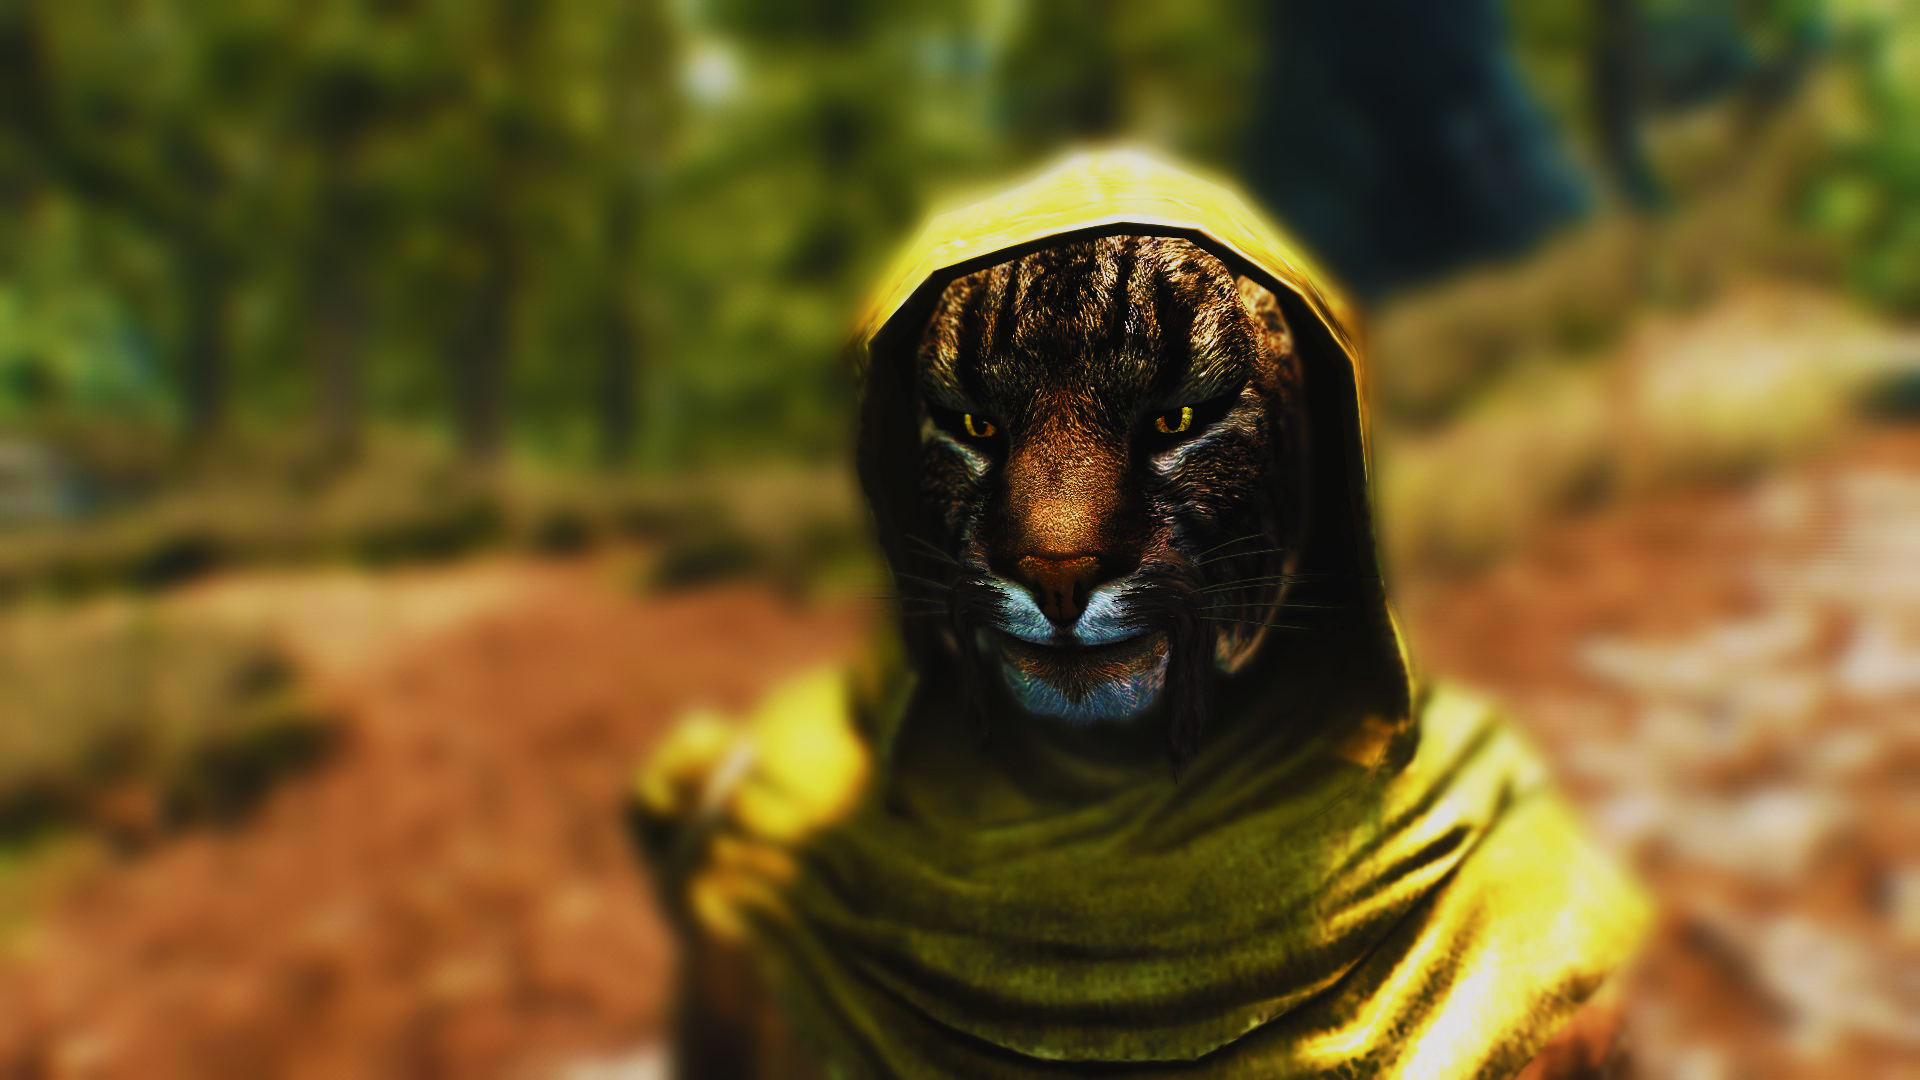 Elder Scrolls V: Skyrim - M'aiq the Liar by Lonewolf898